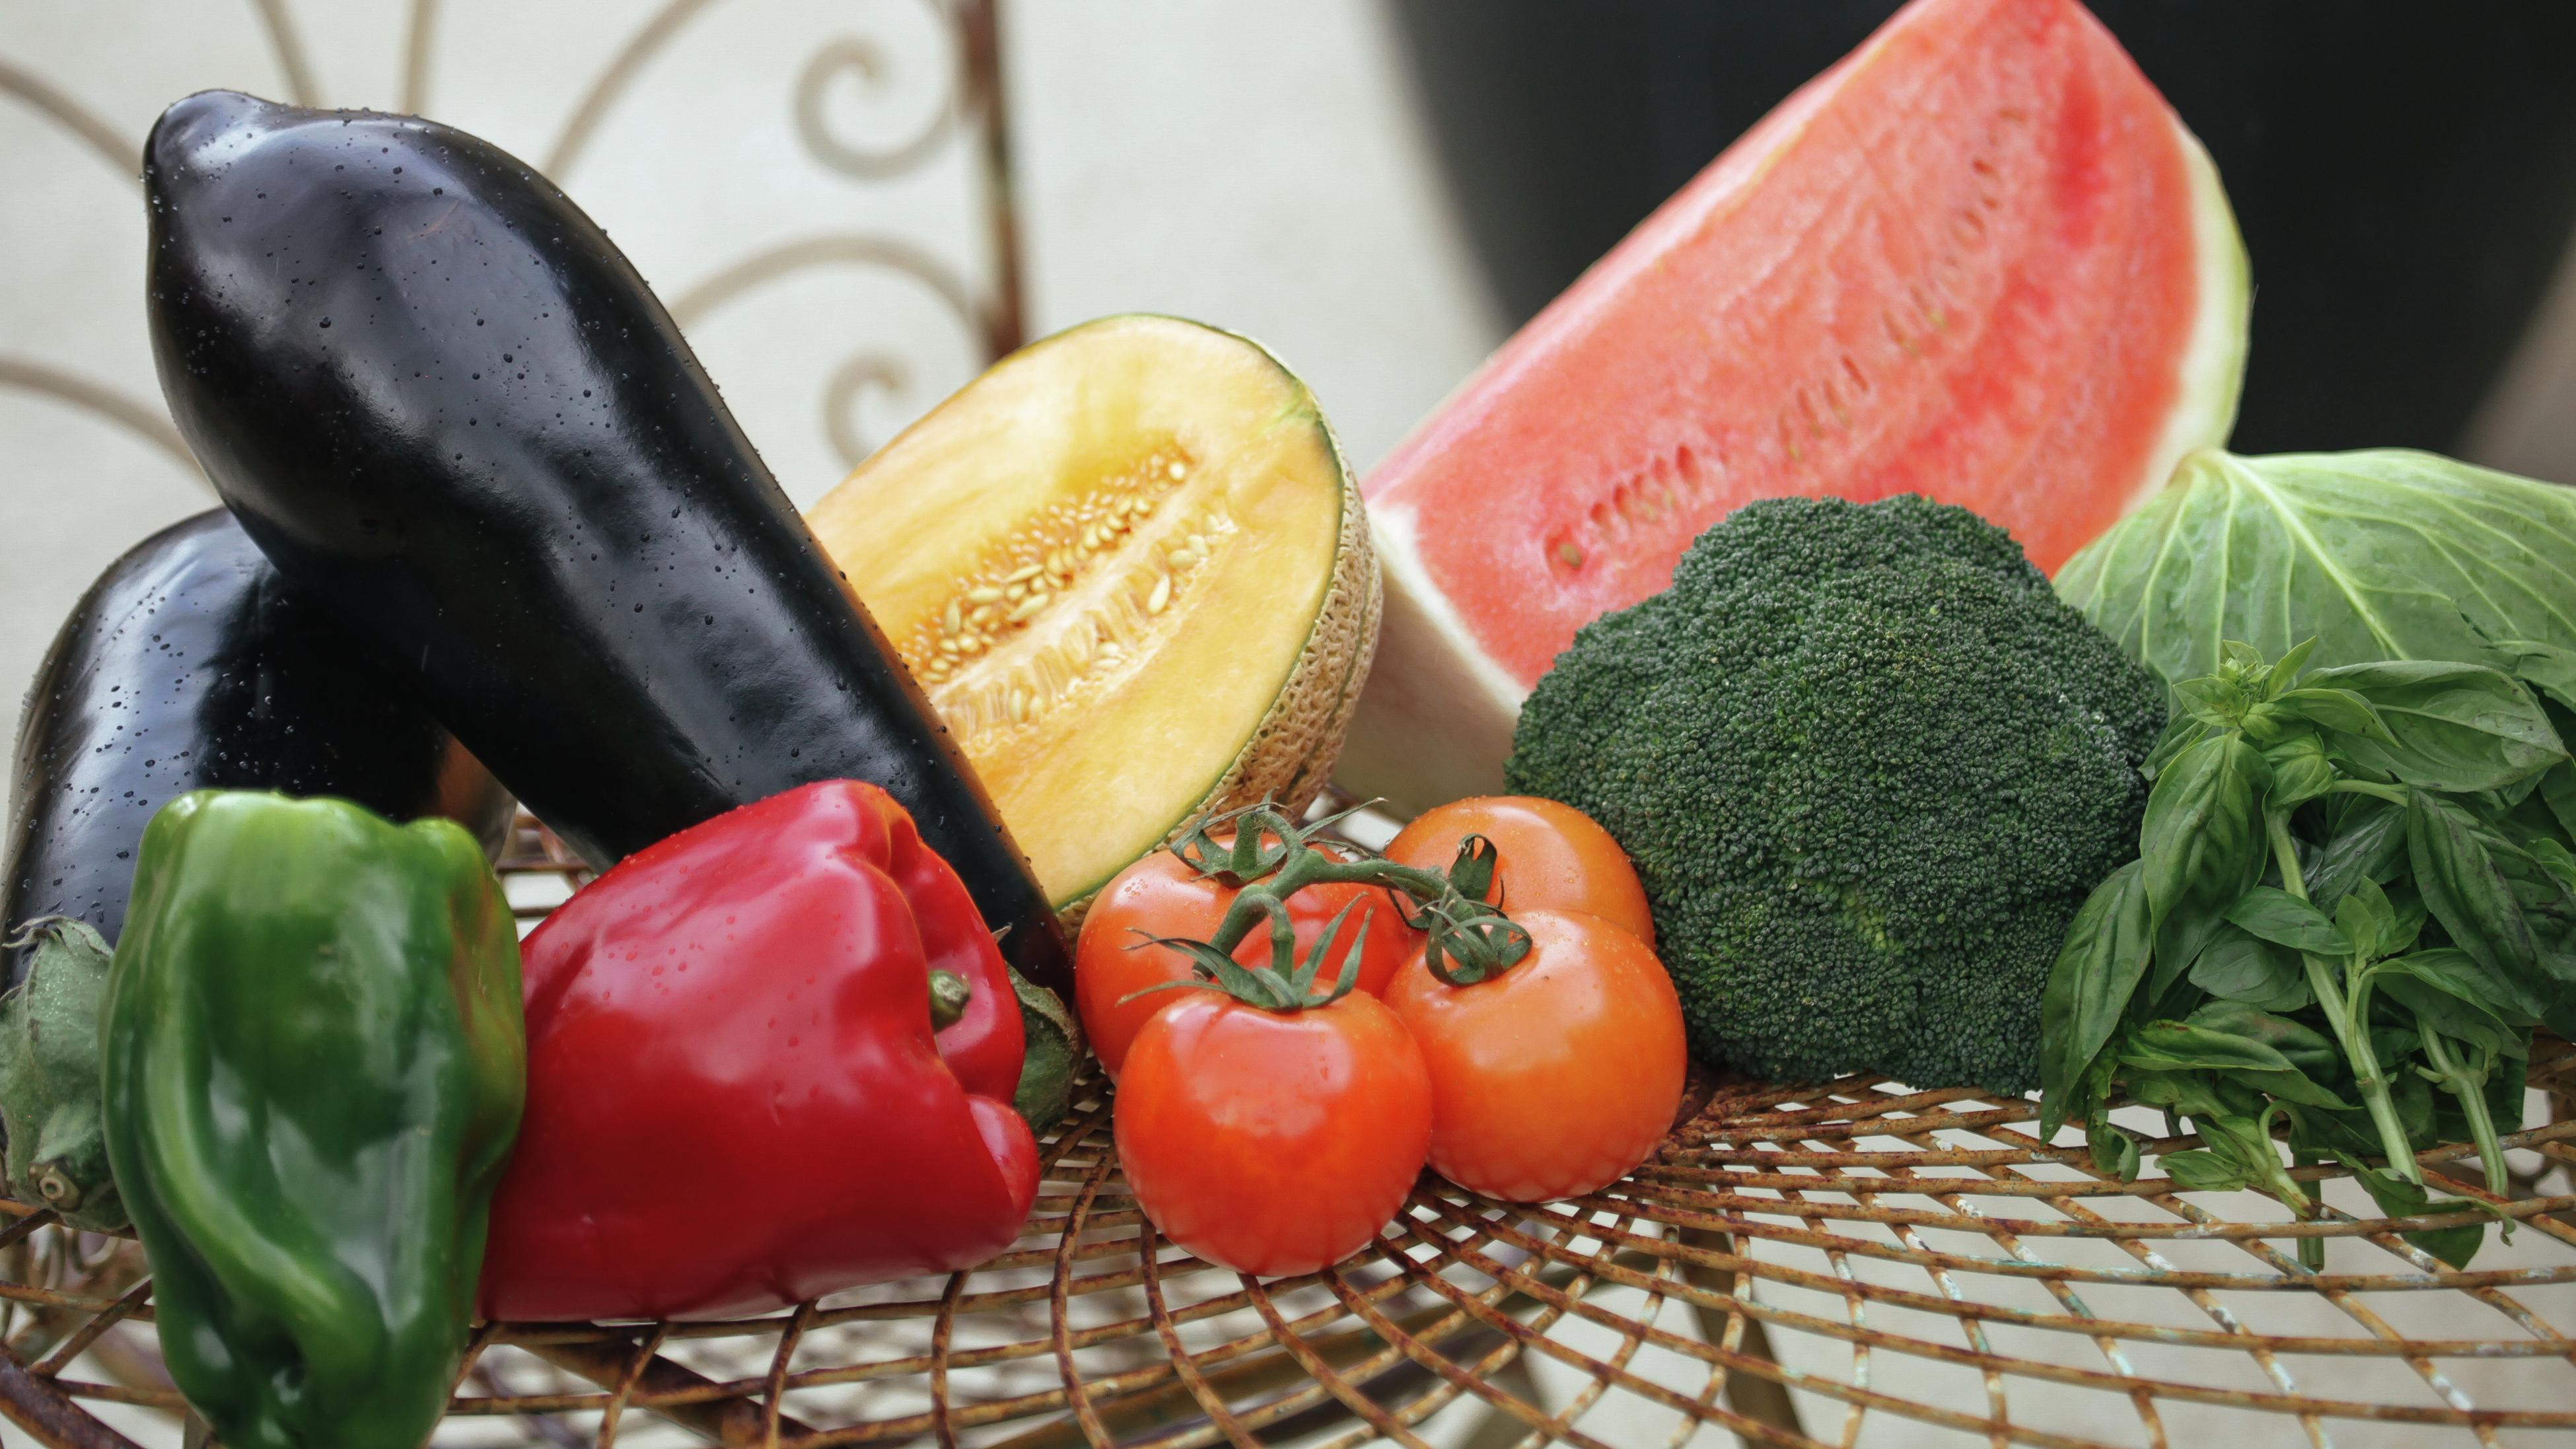 Harvested fruit and vegetables, including tomatoes, capsicum, broccoli, basil, watermelon and fresh rockmelon.